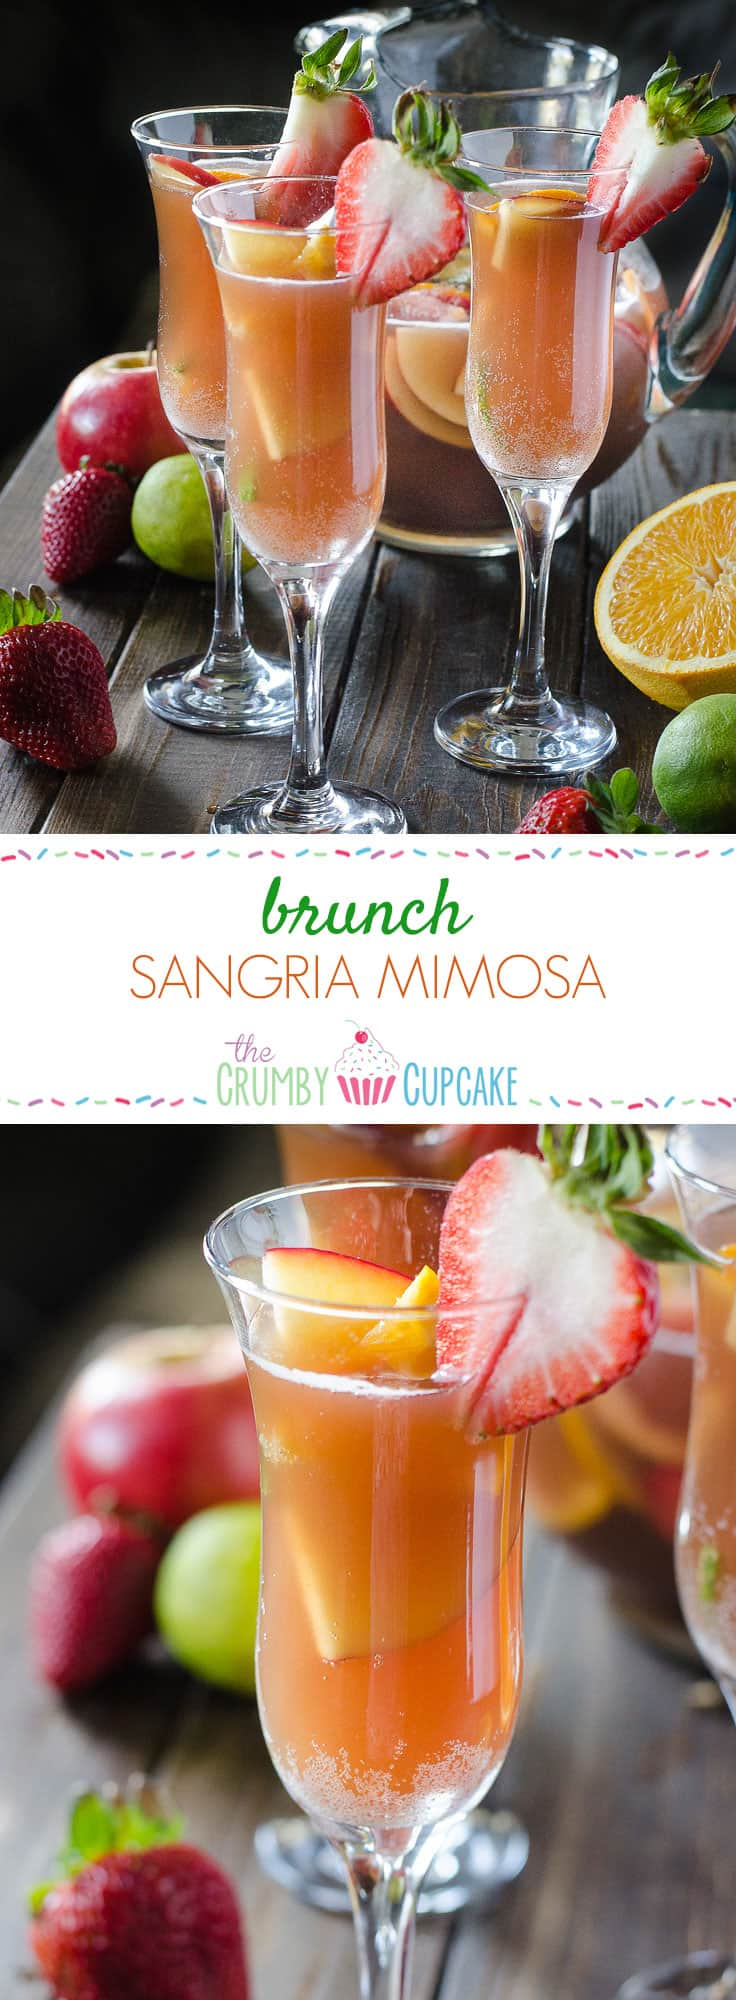 Brunch Sangria Mimosas  The Crumby Kitchen